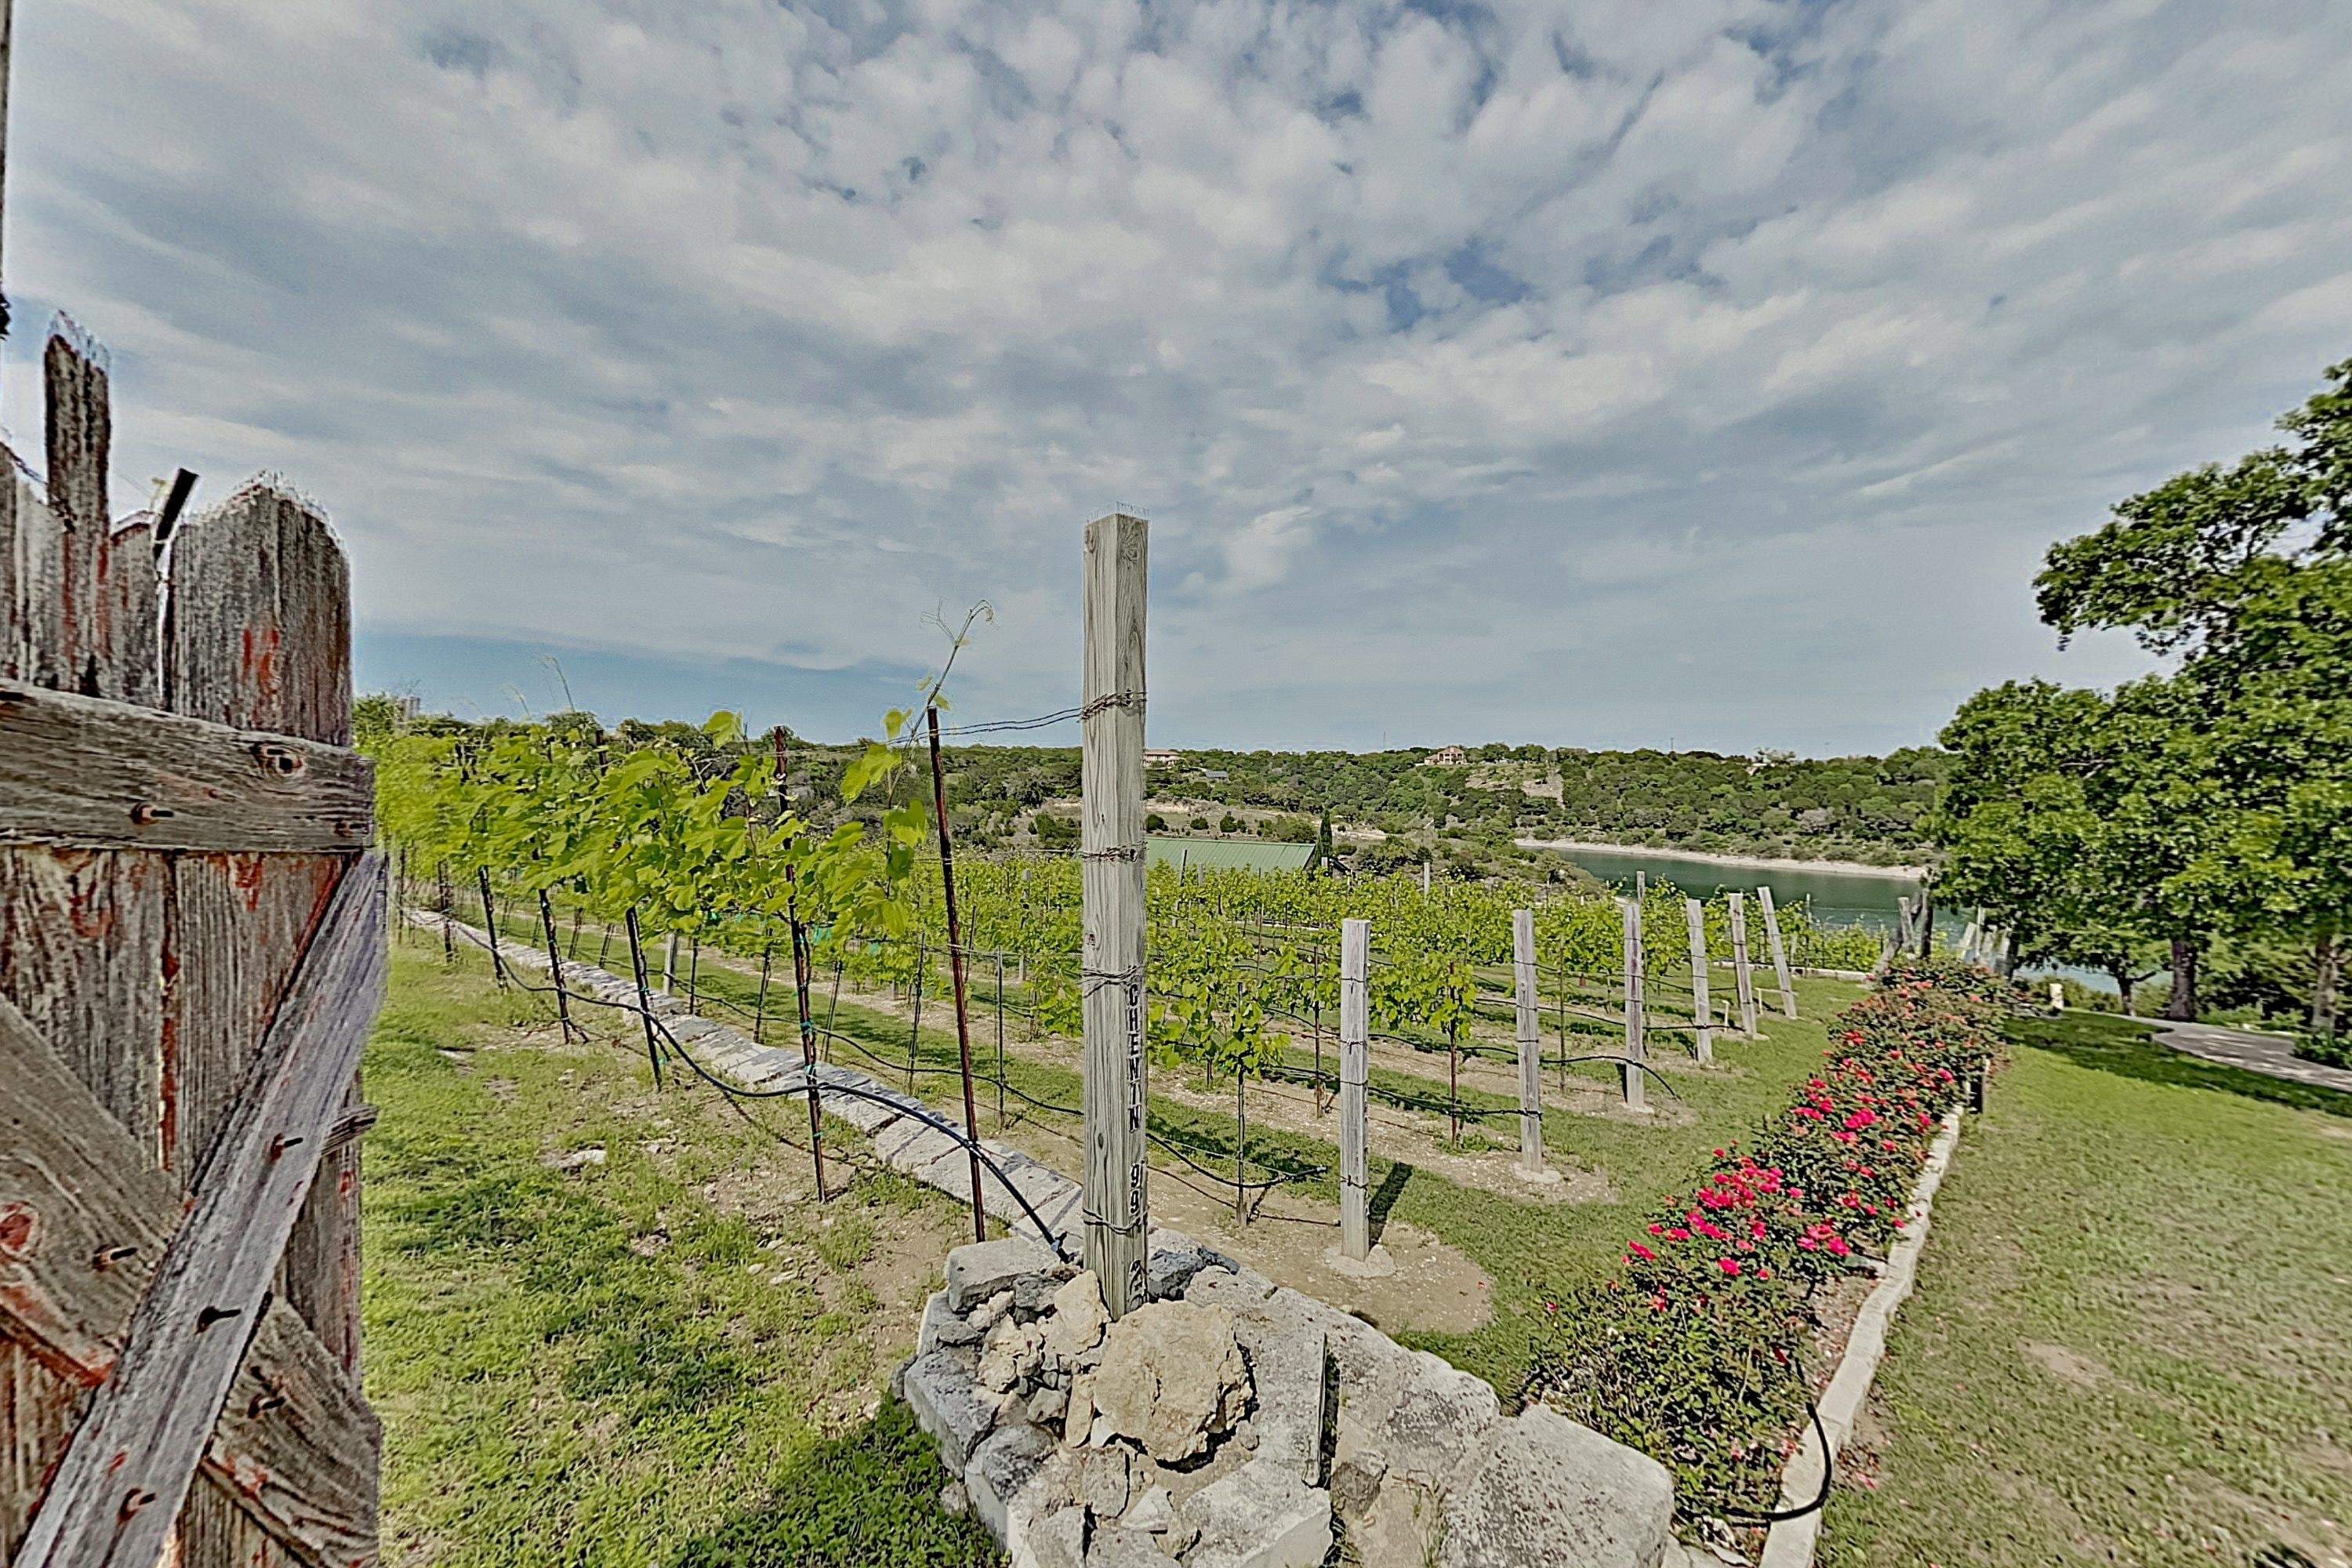 Take a walk and tour the vineyards that surround the property grounds.